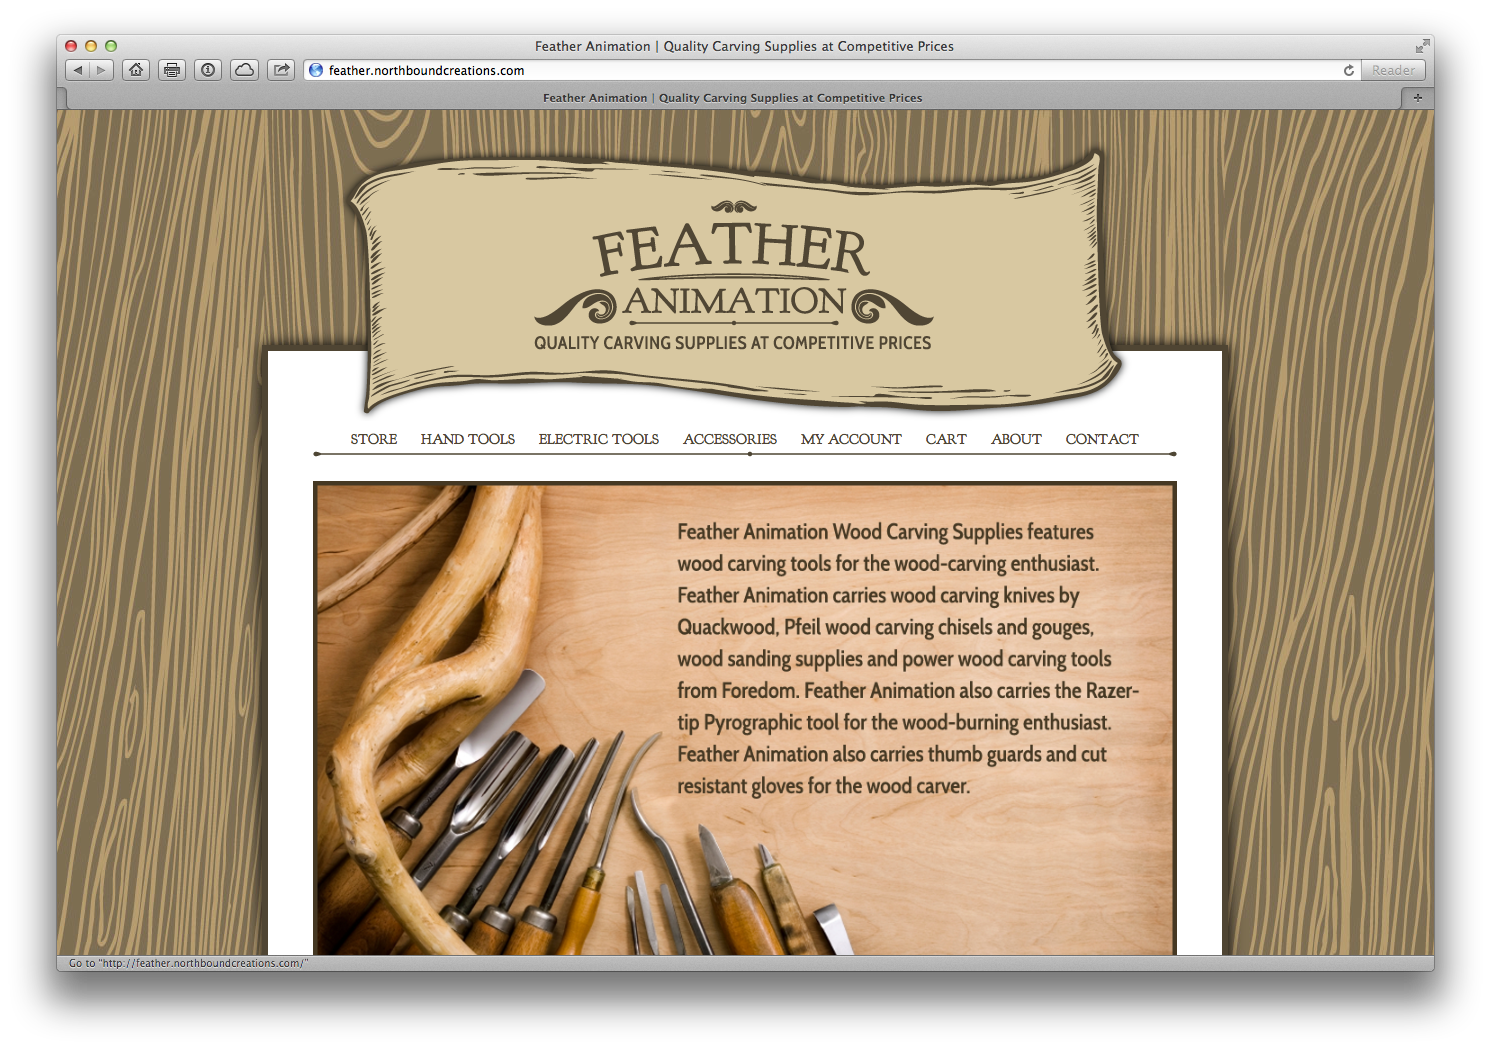 Feather Animation website